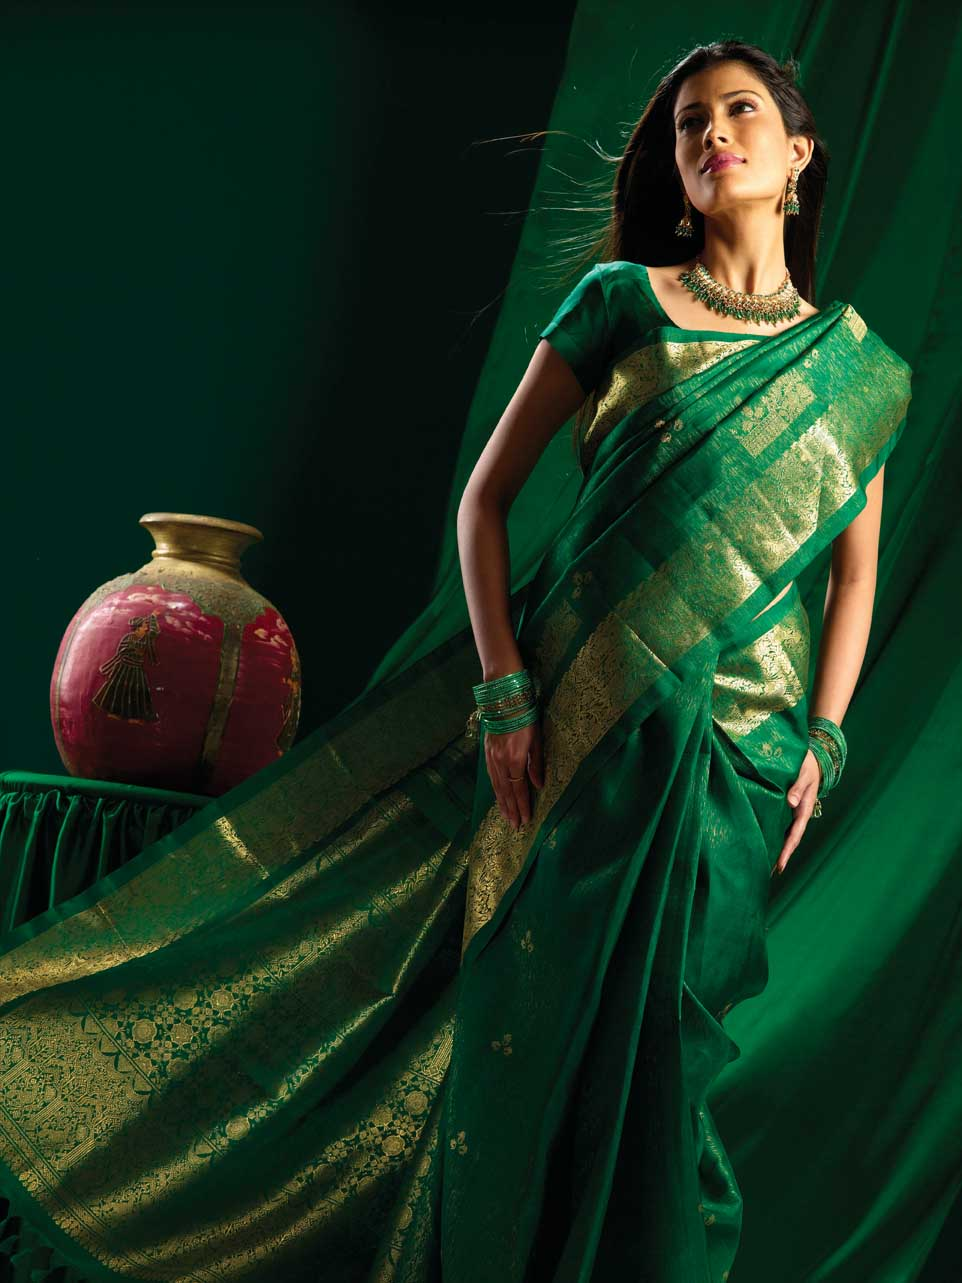 http://upload.wikimedia.org/wikipedia/commons/6/62/Green_brocade_silk_saree.jpg